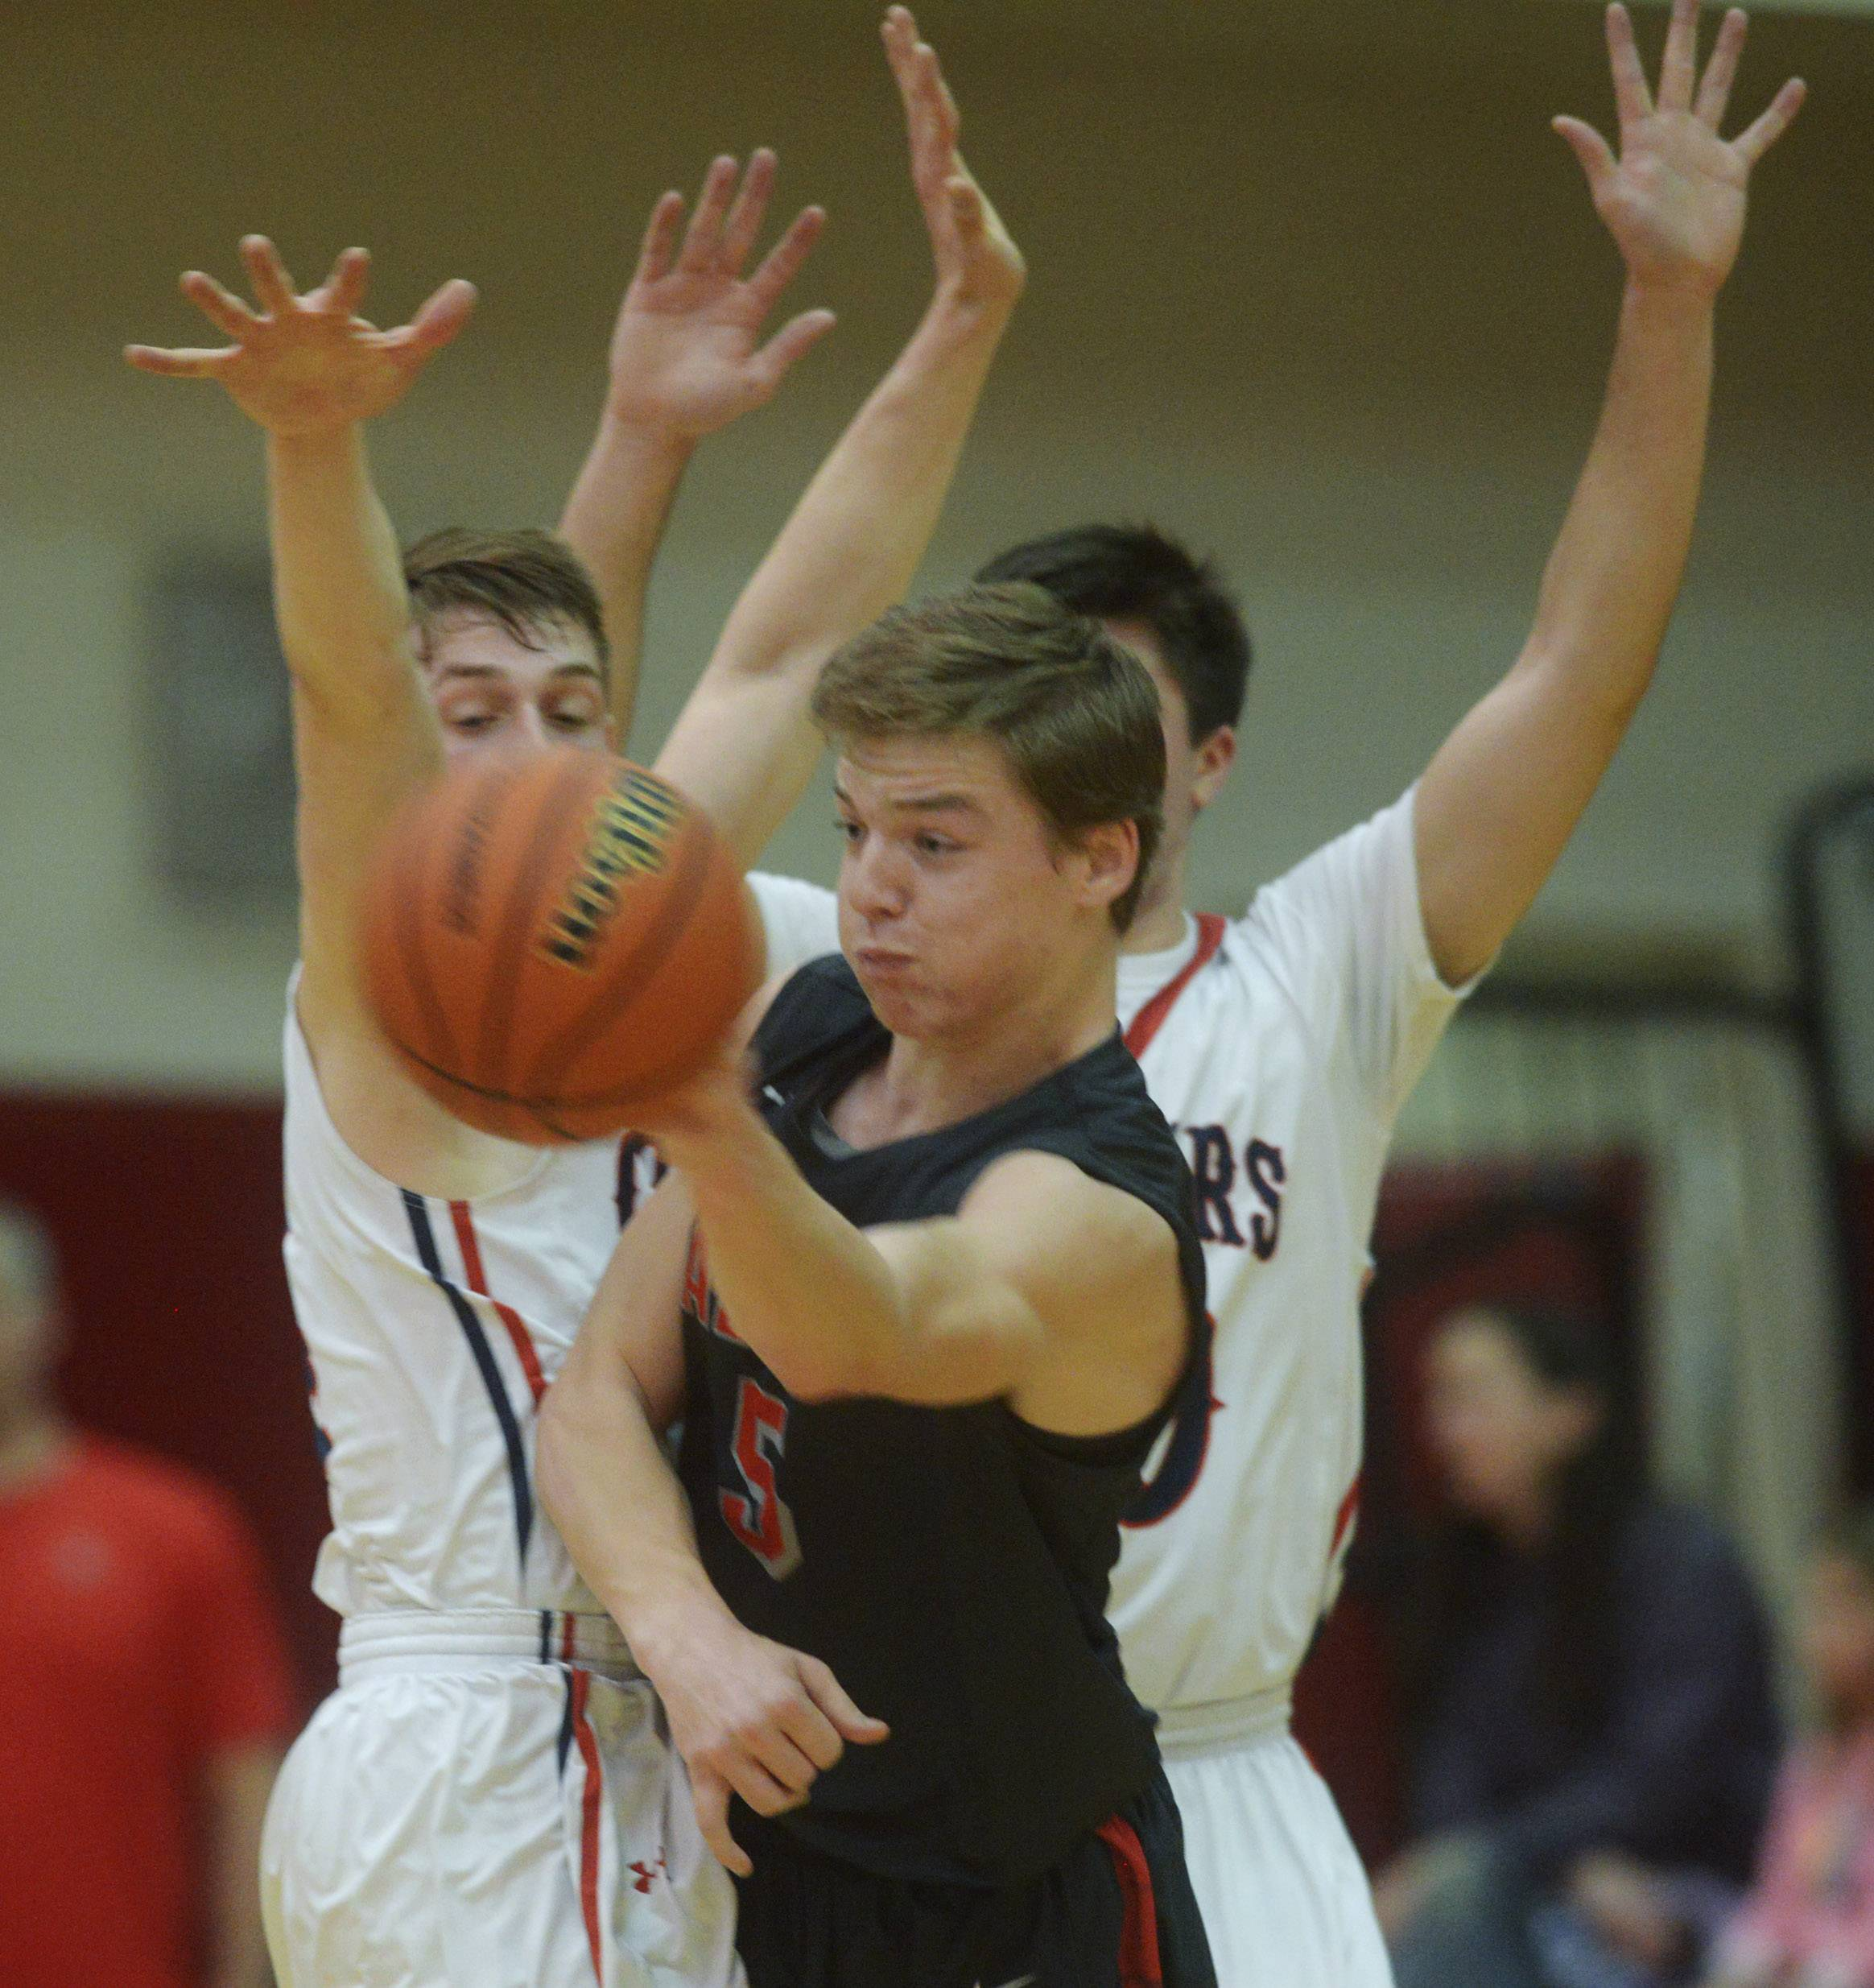 Palatine's Jake Moertl passes while being pressured by Conant's Jimmy Sotos, left, and Ben Schols during the Class 4A regional semifinal at Palatine on Tuesday.